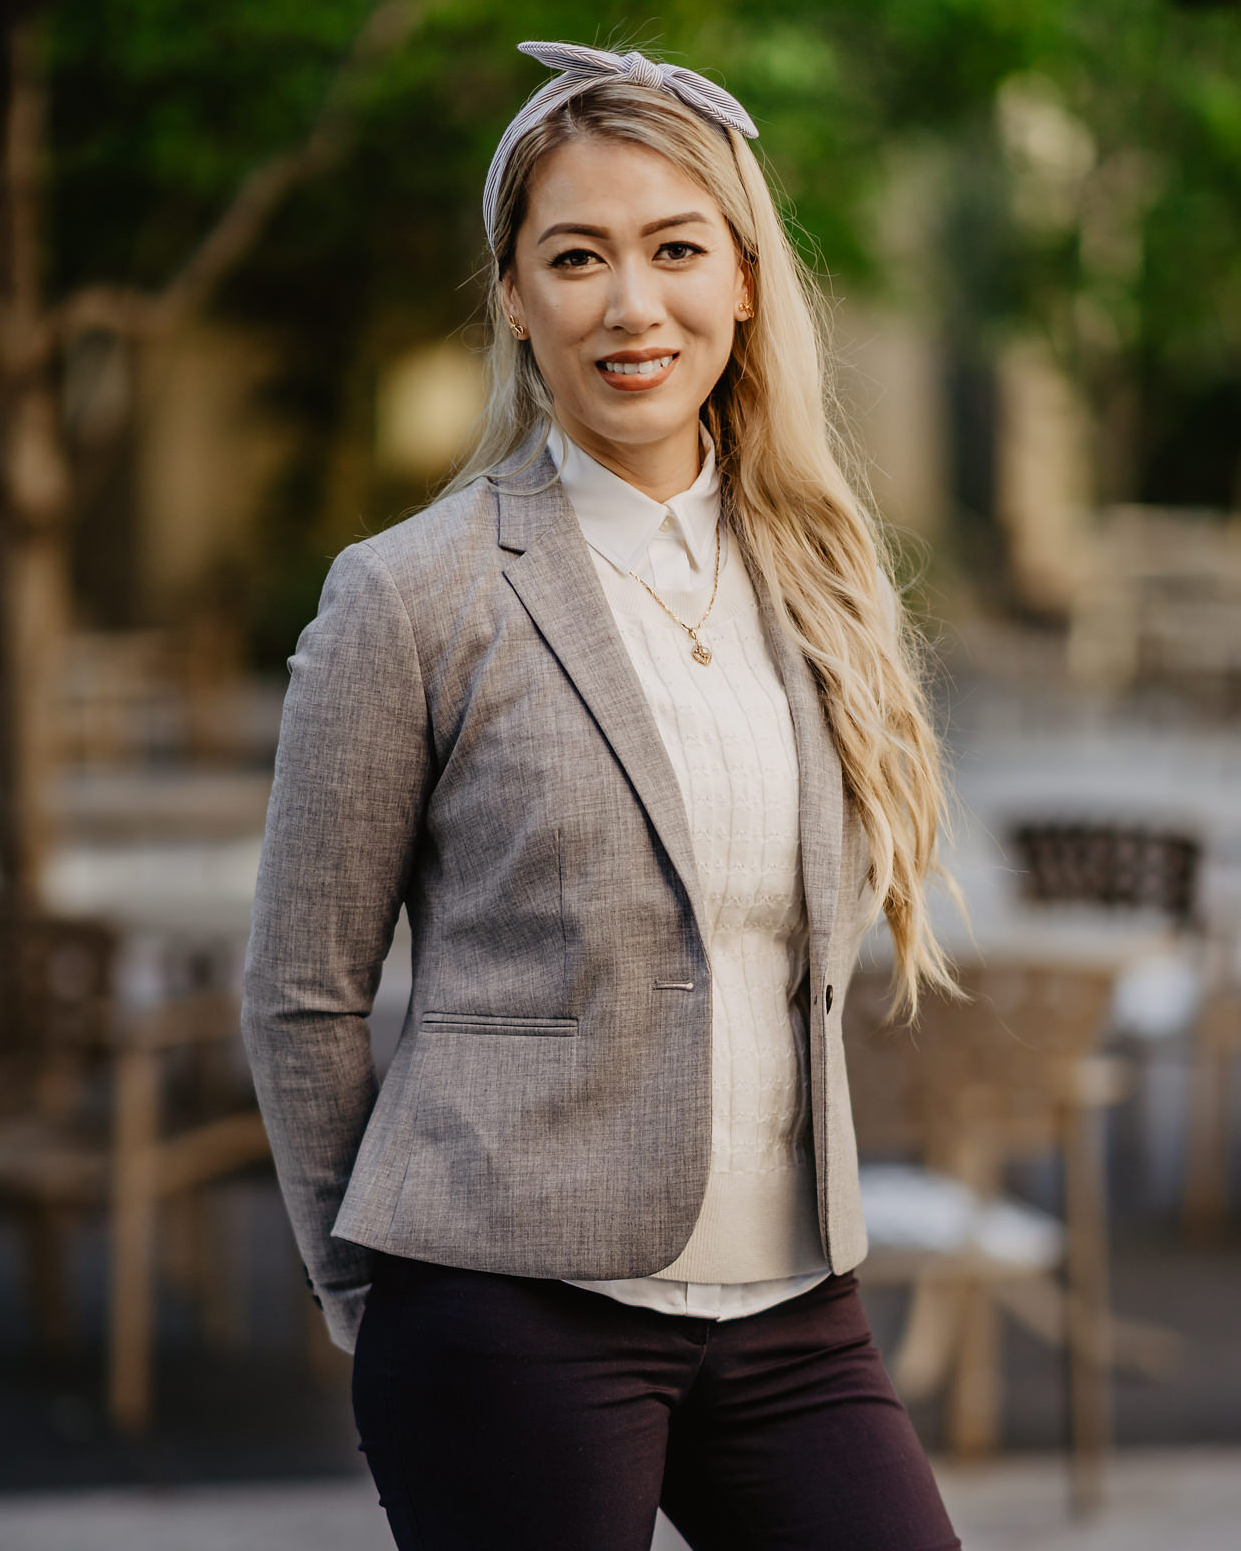 Thuy Nguyen Le -- Property & Operations Manager (4-5 AR Crop)